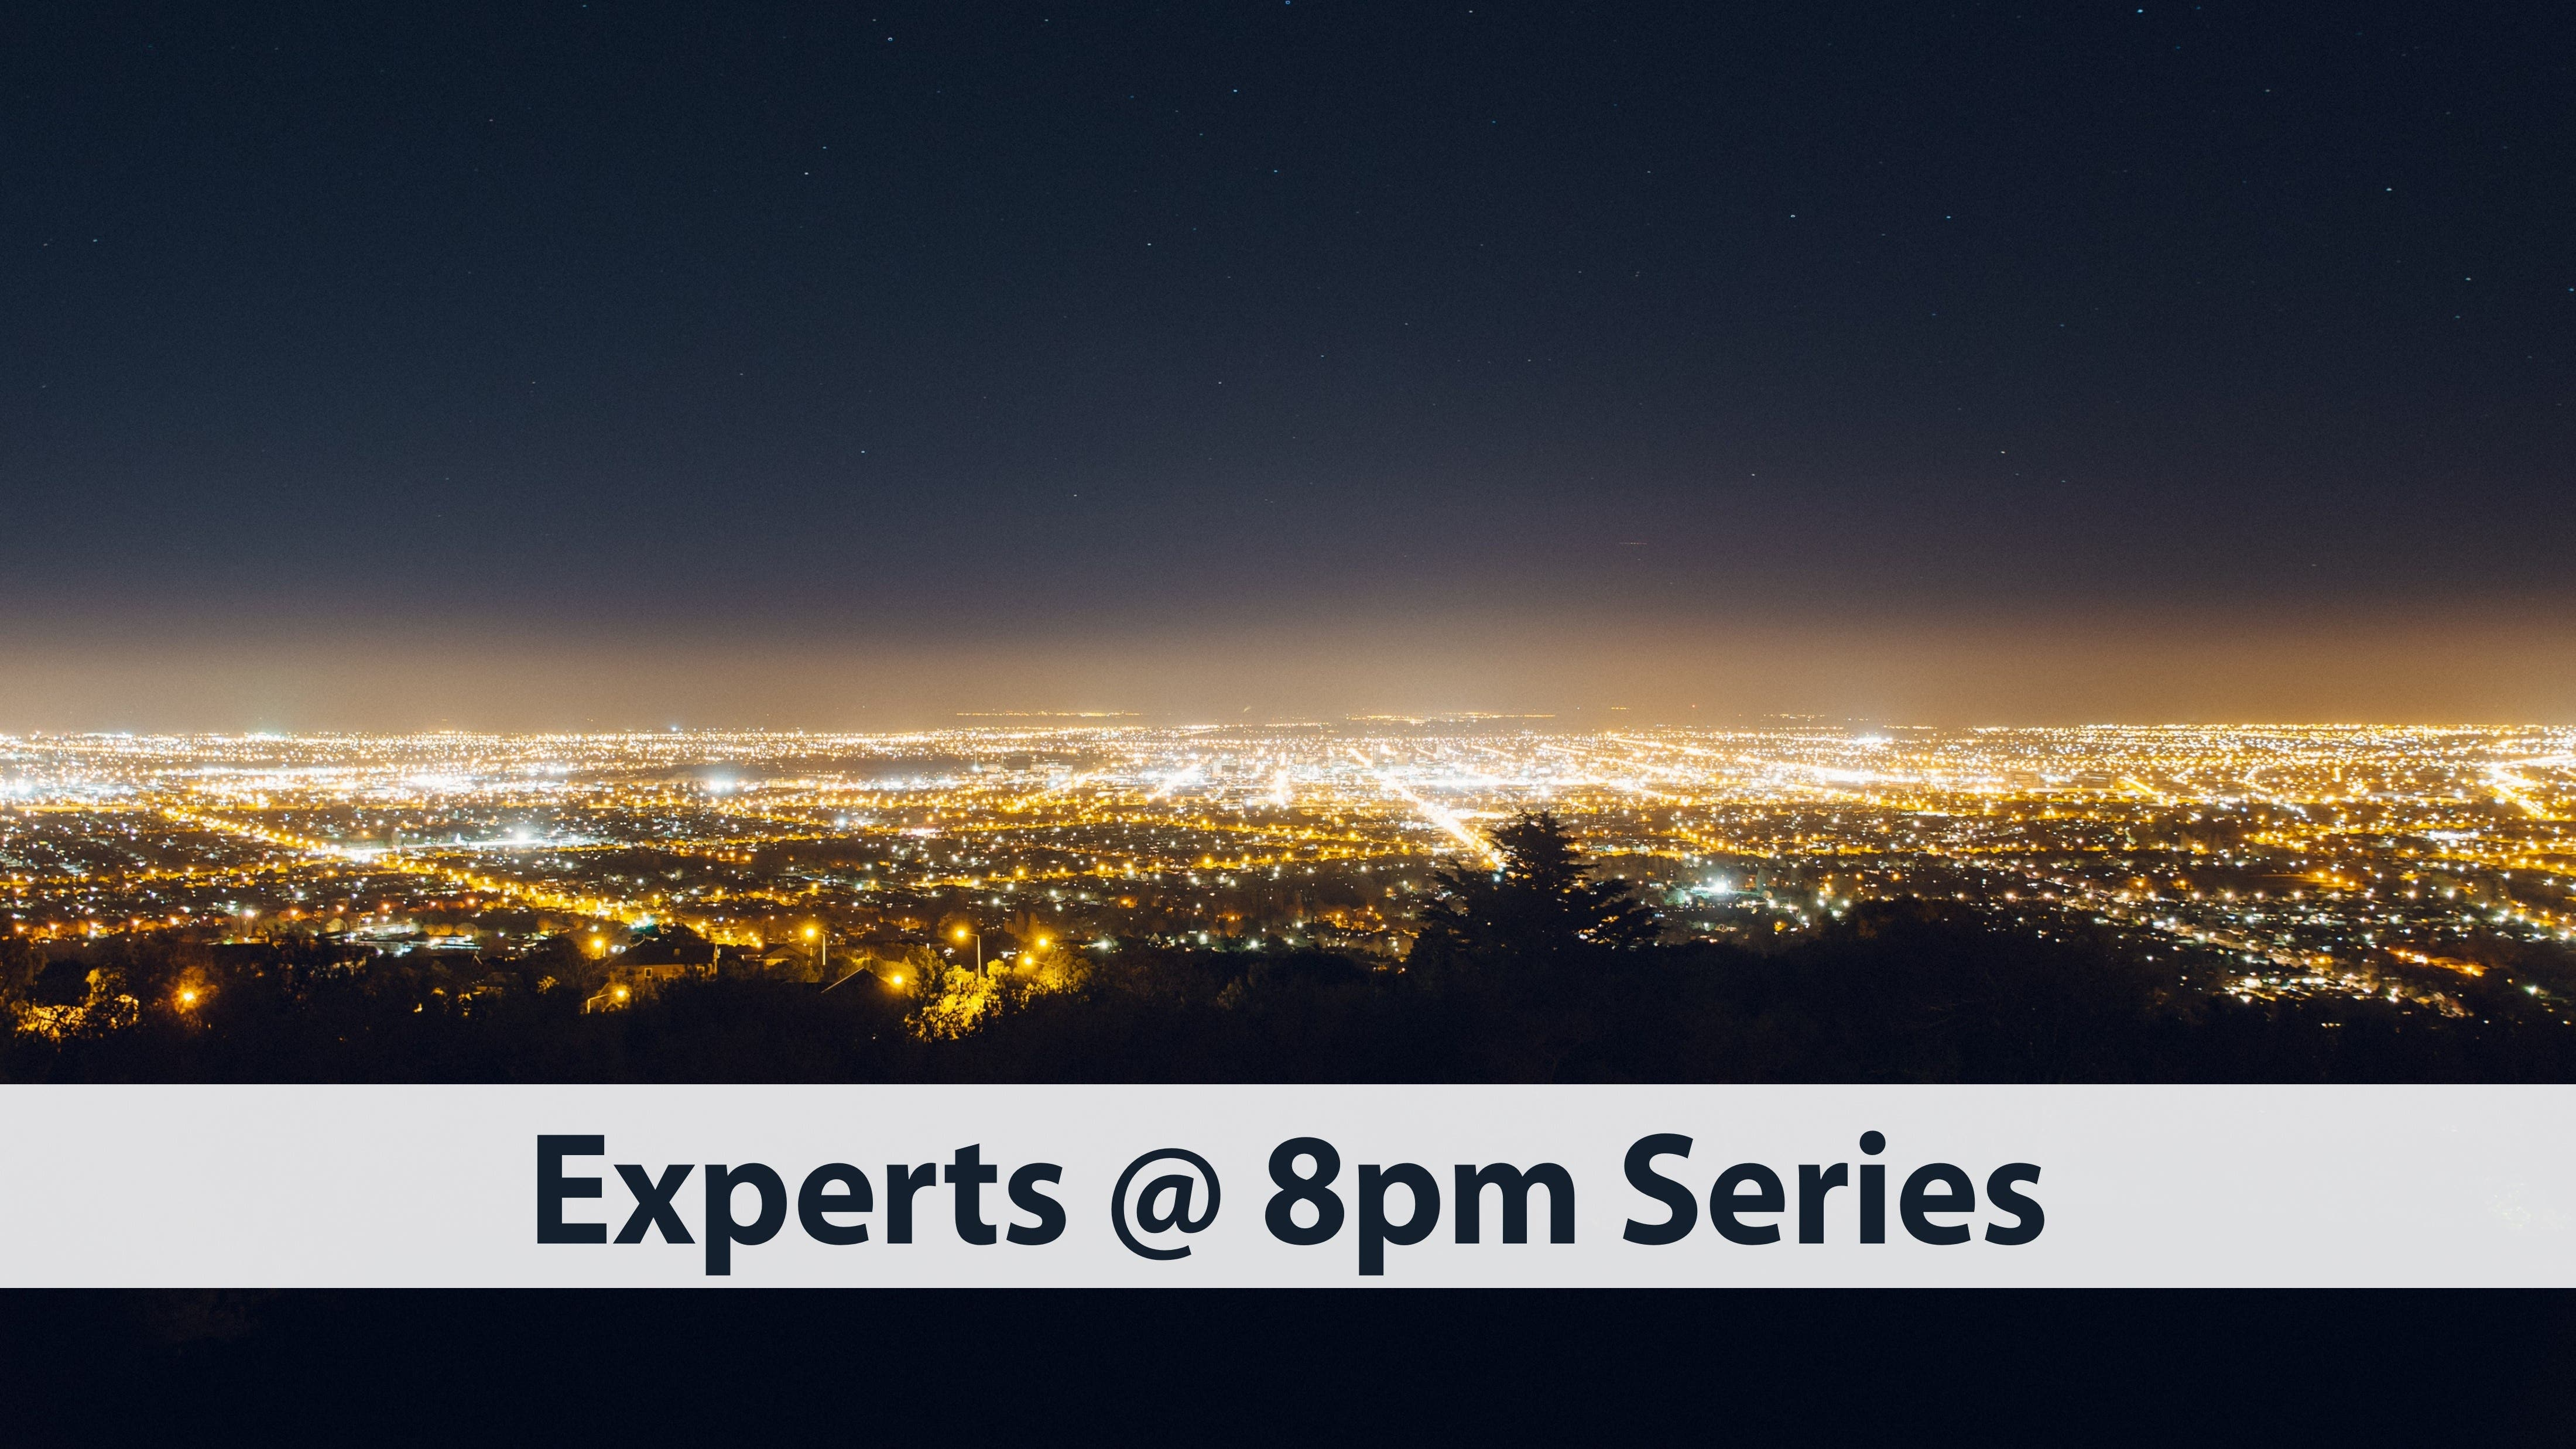 Experts @ 8pm